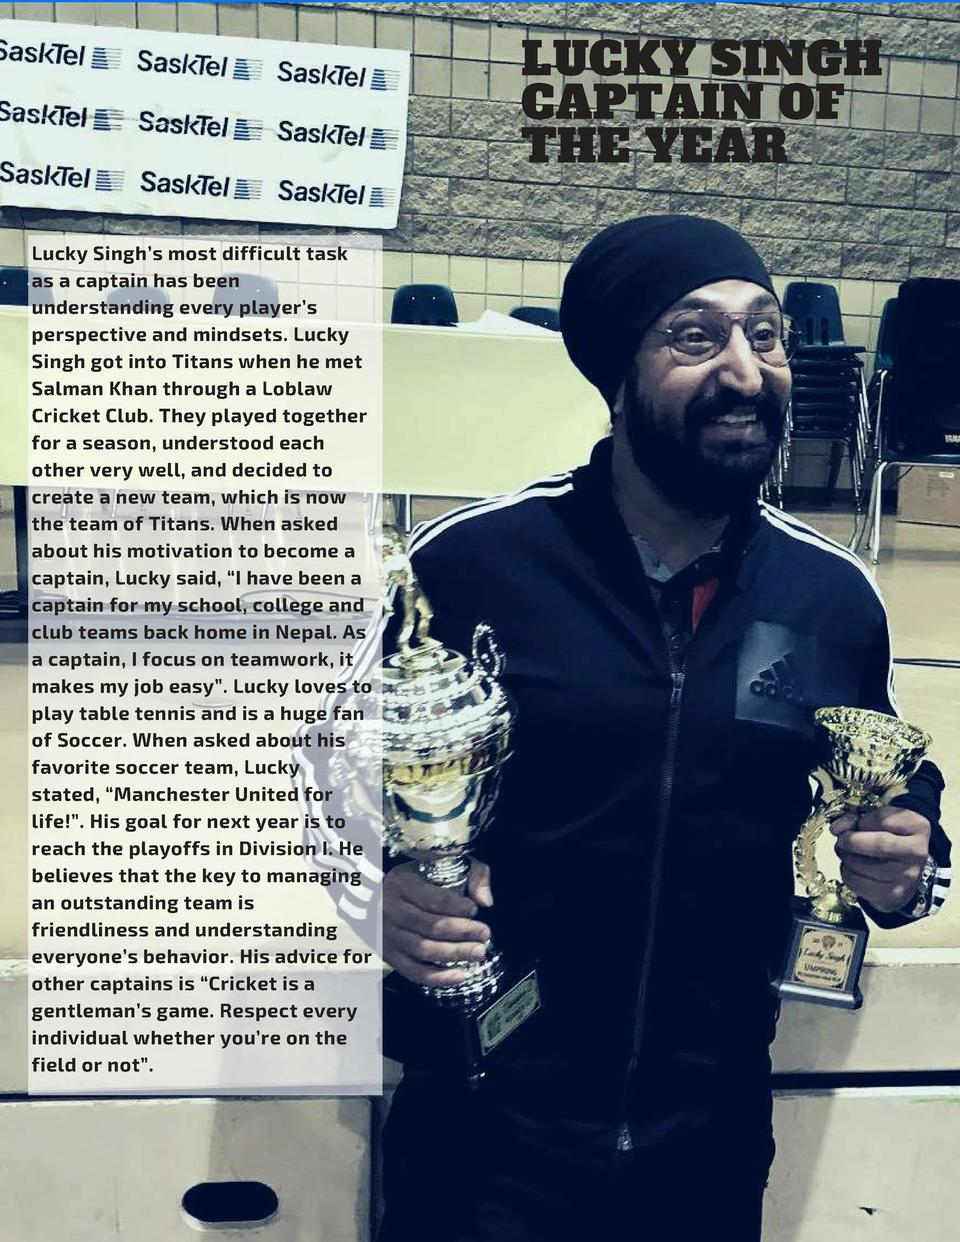 LUCKY SINGH CAPTAIN OF THE YEAR Lucky Singh   s most difficult task as a captain has been understanding every player   s p...